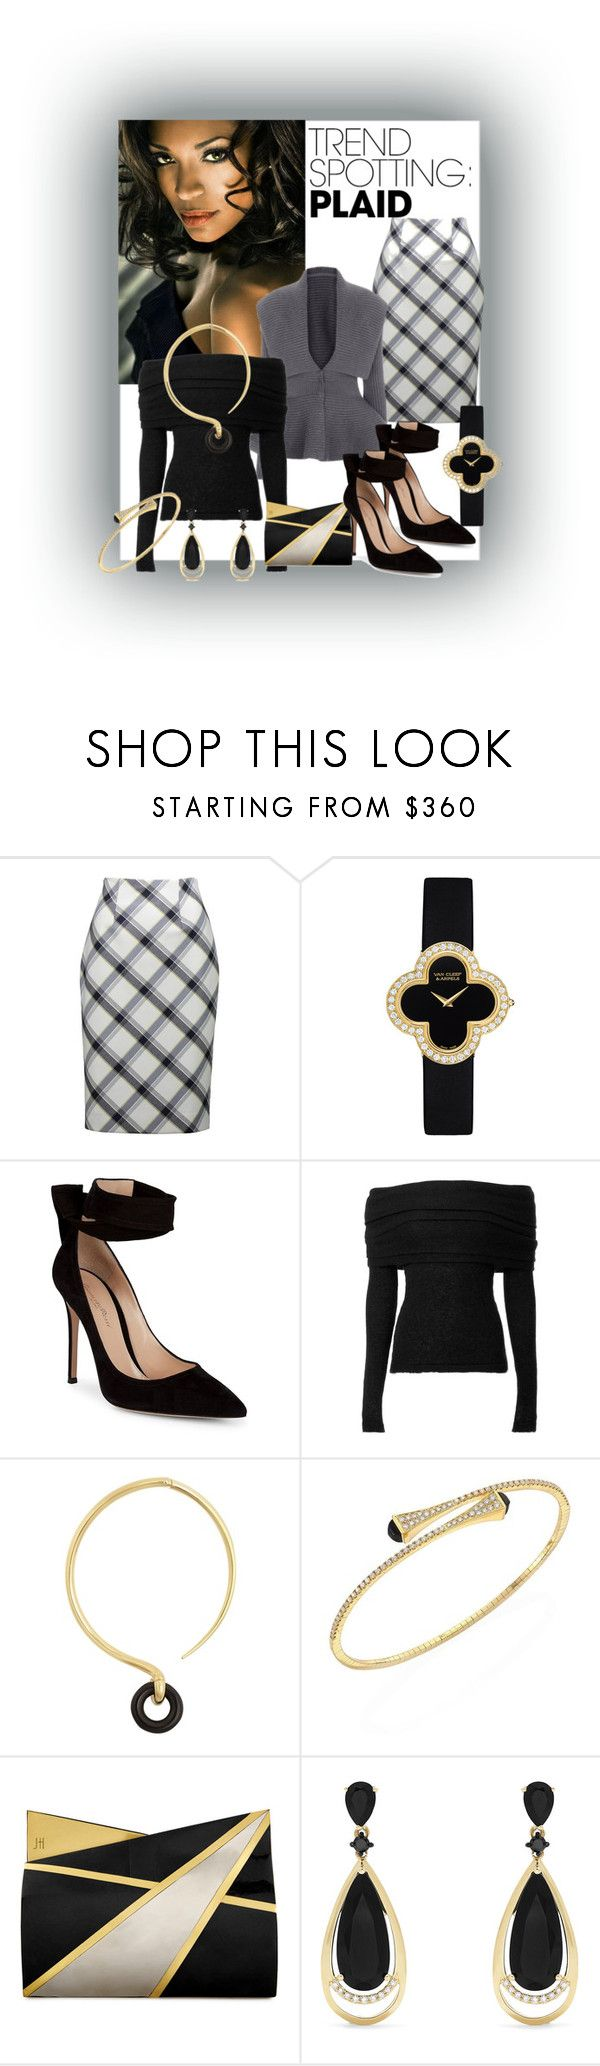 """Plaid at Work"" by kflorence ❤ liked on Polyvore featuring Van Cleef & Arpels, Gianvito Rossi, Charlotte Chesnais, Marli, Jill Haber and Effy Jewelry"